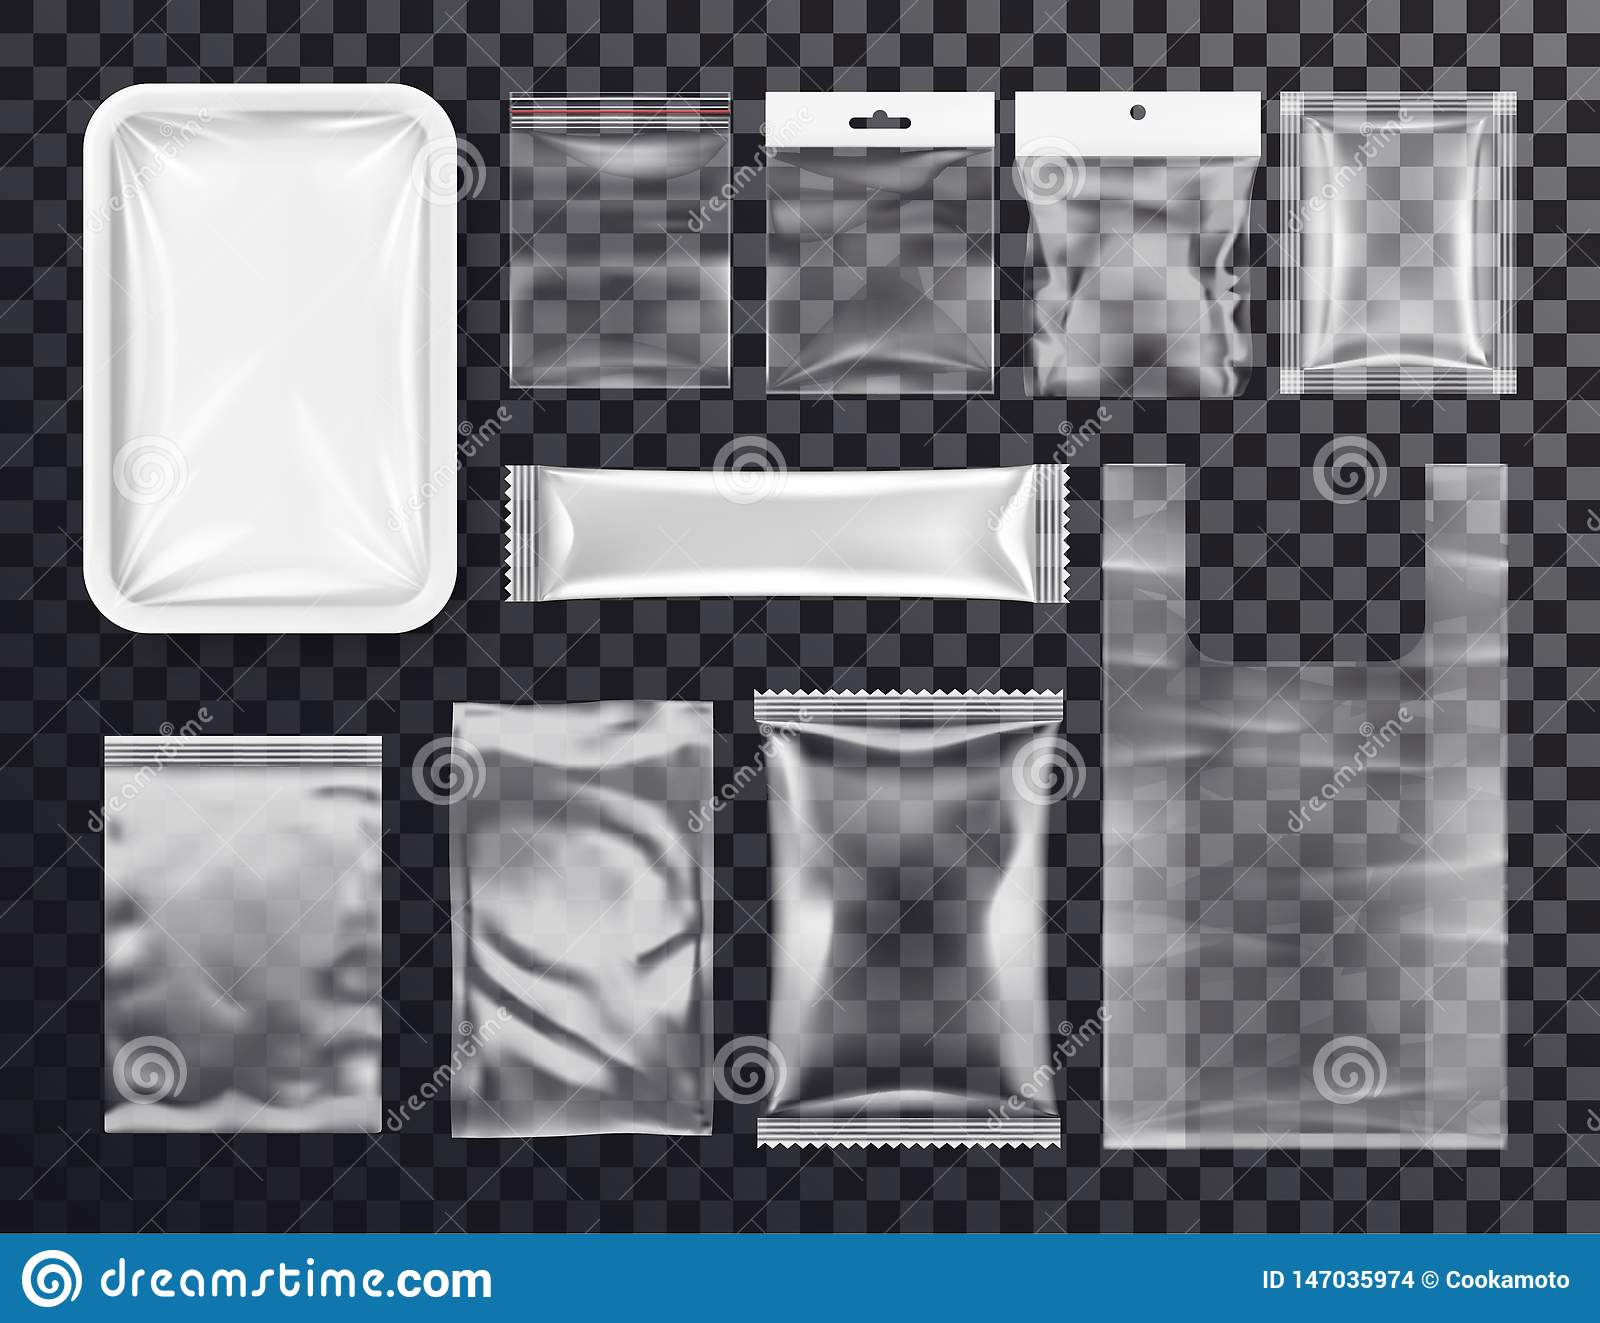 Use this mockup to showcase your paper bag packaging designs or any branding work you might have. Bag Mockup Stock Illustrations 13 998 Bag Mockup Stock Illustrations Vectors Clipart Dreamstime